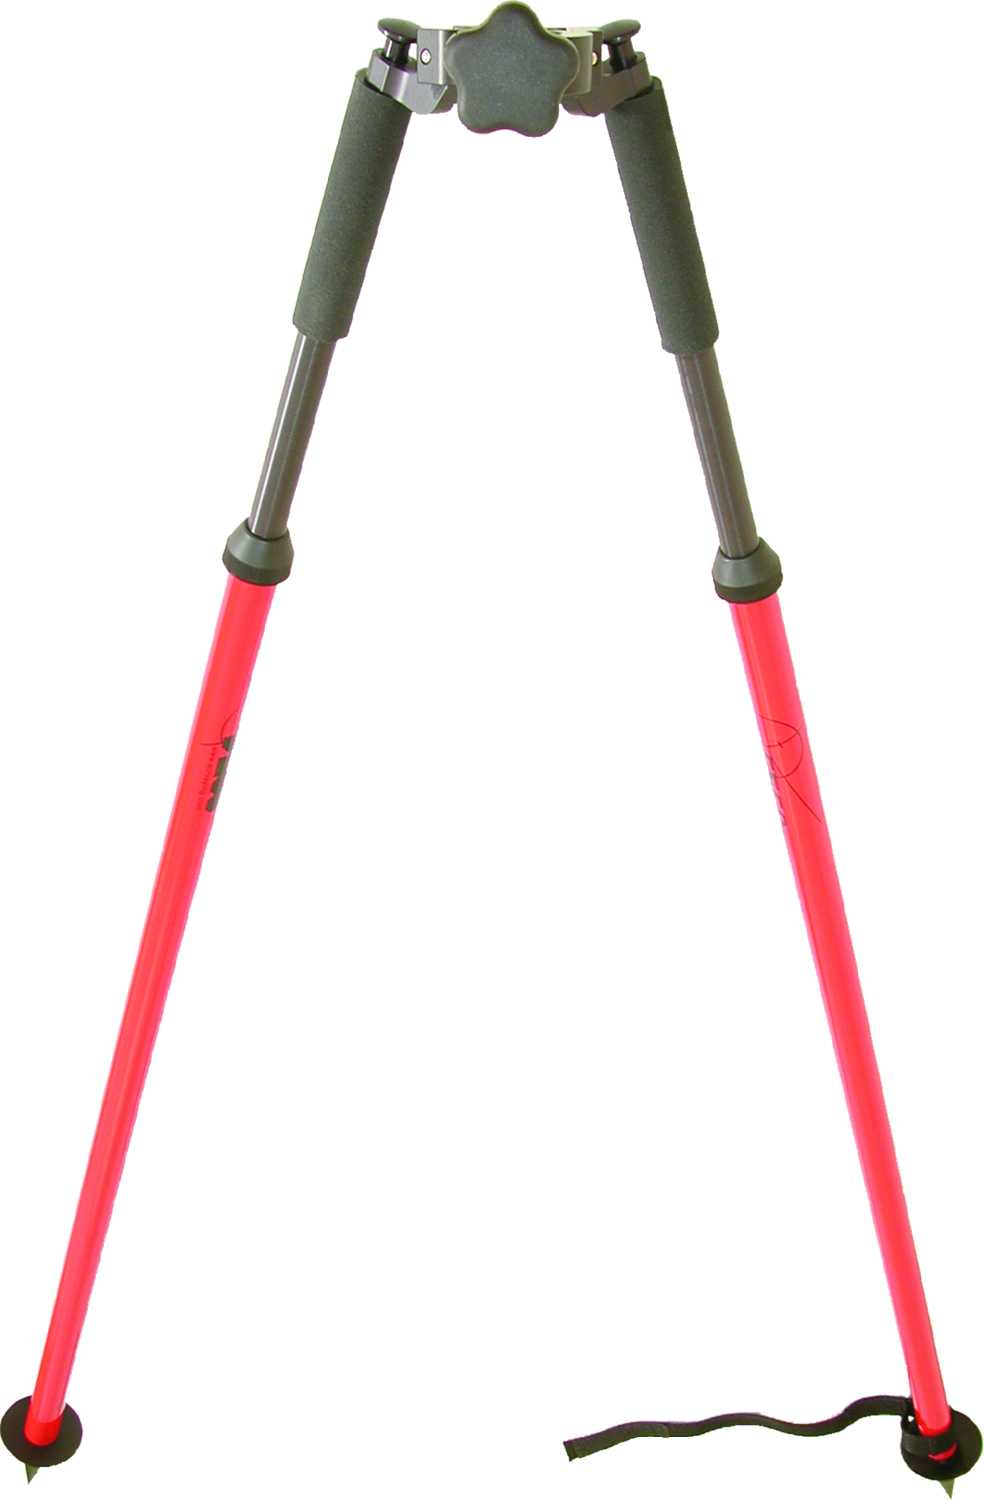 SECO Thumb-Release Prism Pole Bipod 5217-04-RED